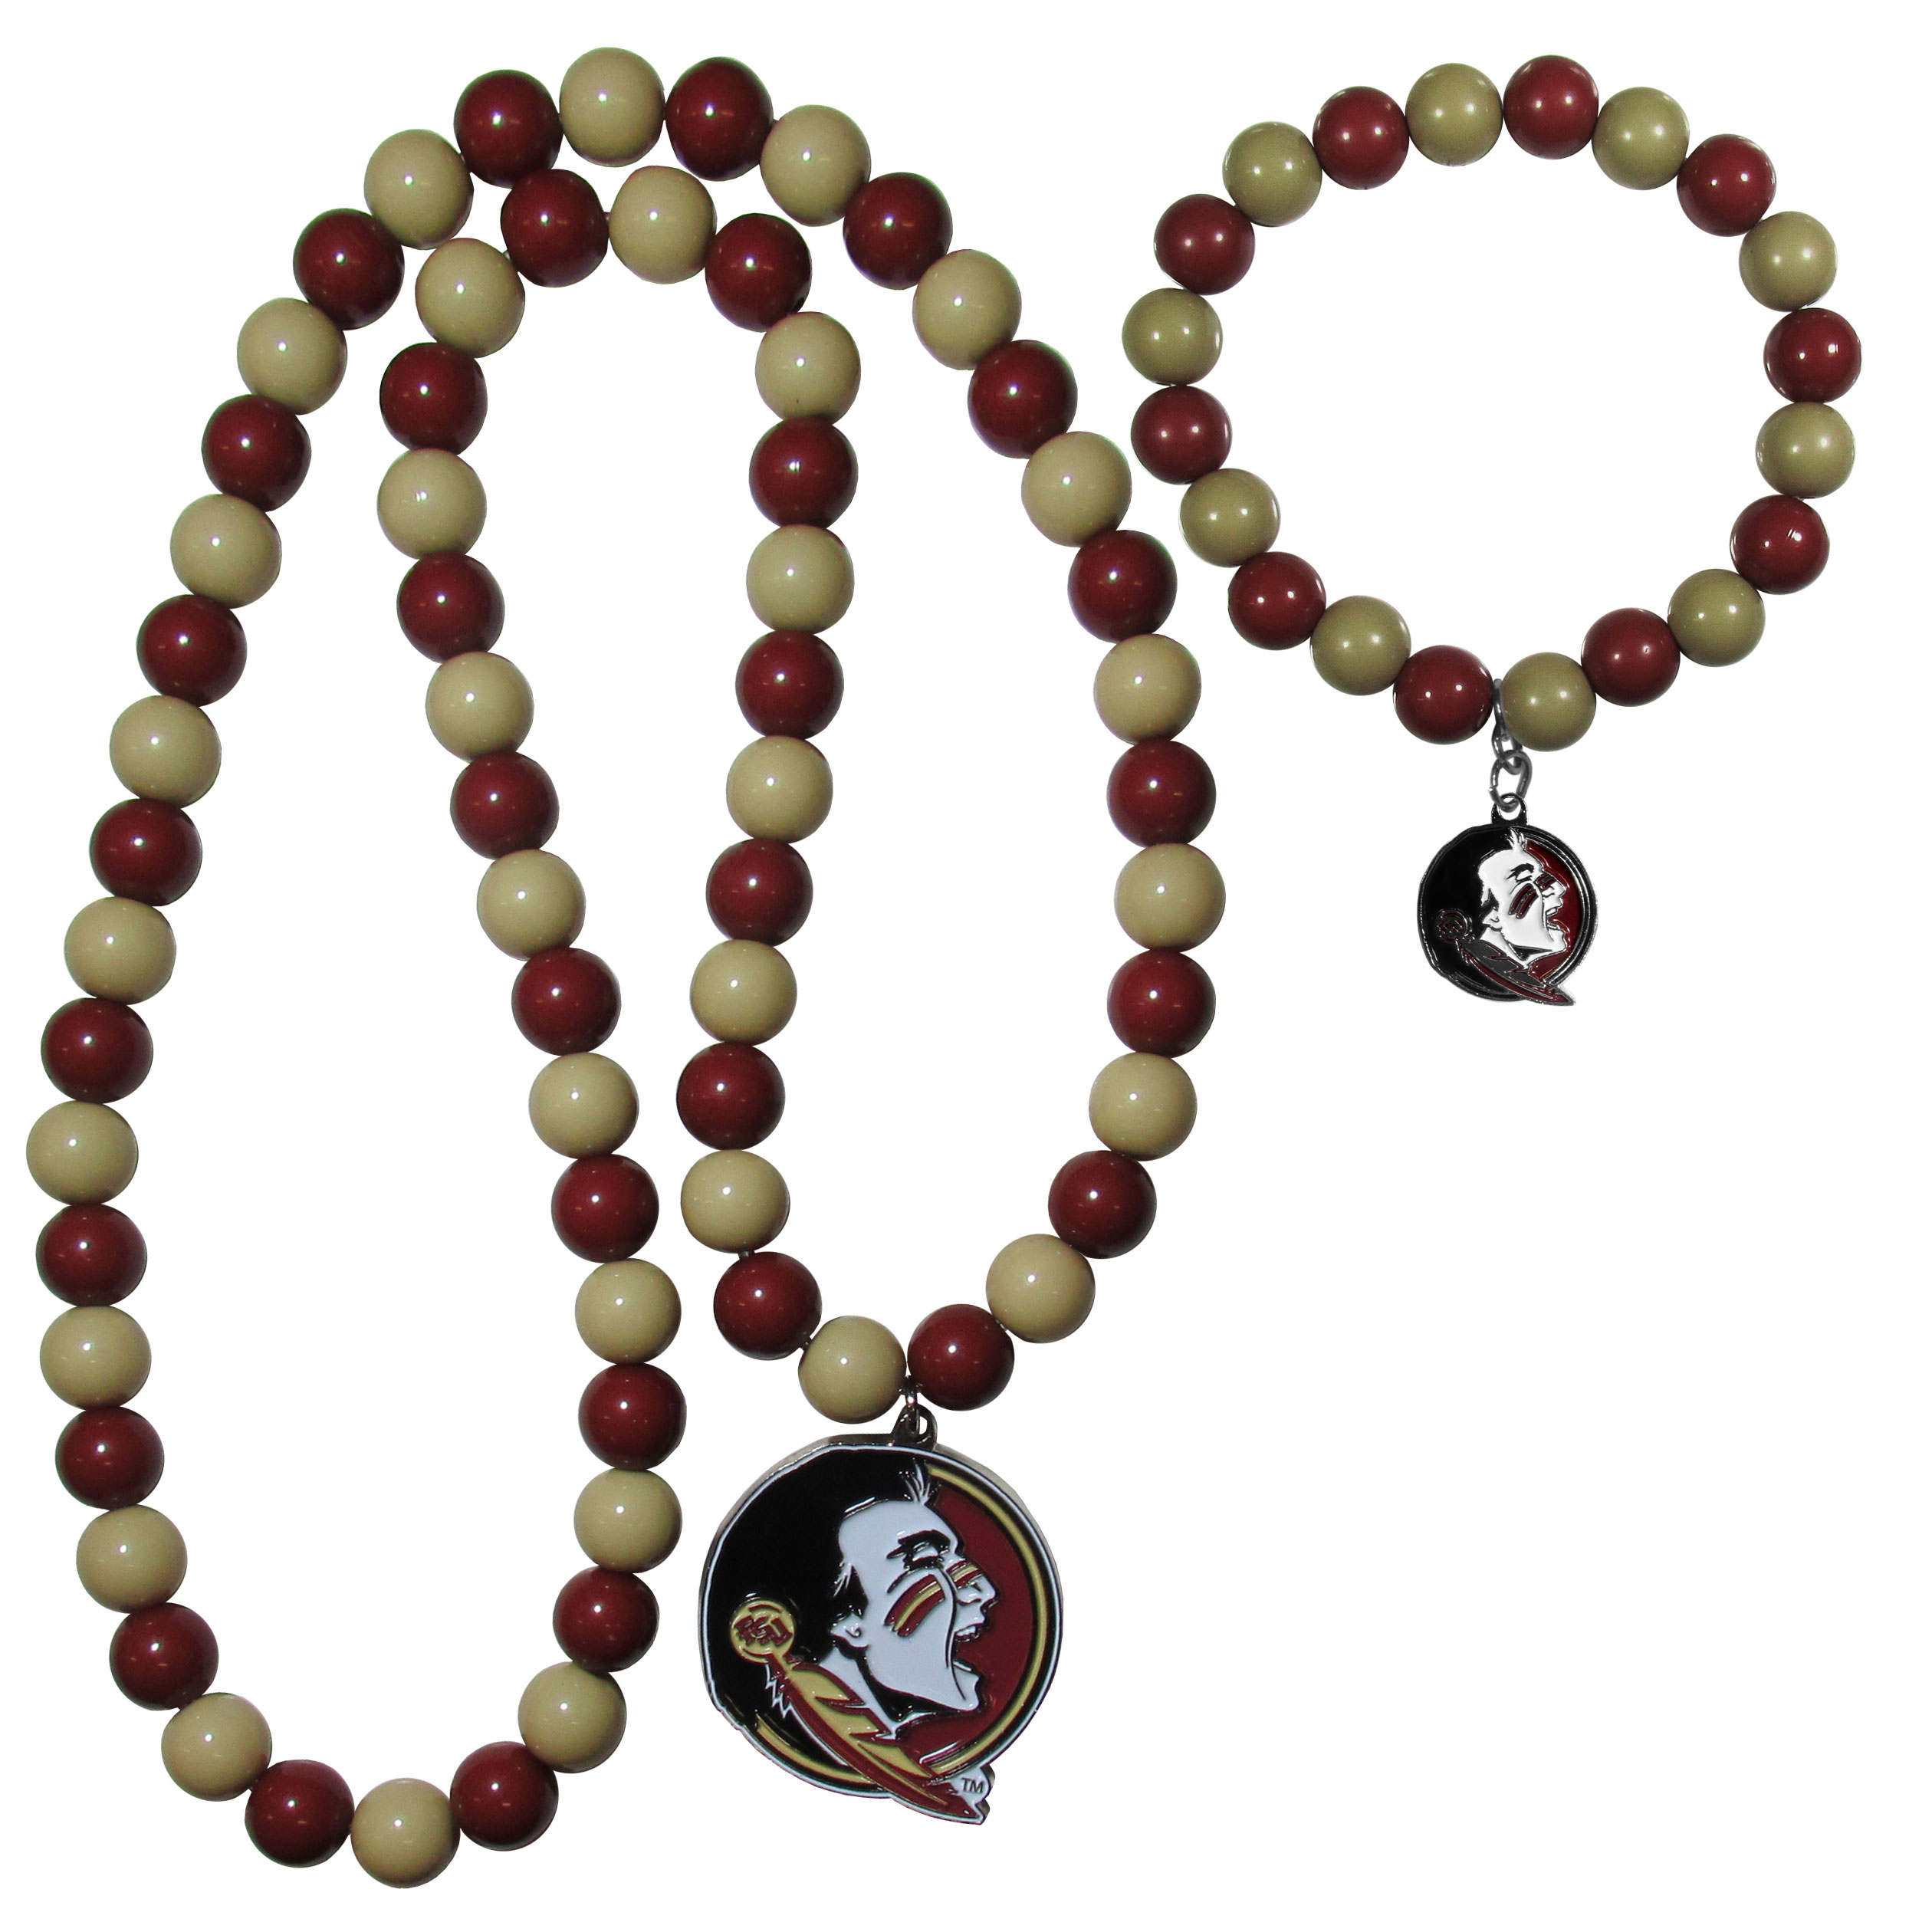 Florida St. Seminoles Fan Bead Necklace and Bracelet Set - These fun and colorful Florida St. Seminoles fan bead jewelry pieces are an eyecatching way to show off your team spirit. The striking necklace is a 24 inch string of alternating team colored beads with a large team pendant. The mathcing bracelet has alternating team colored beads on a stretch cord and features a matching team charm.